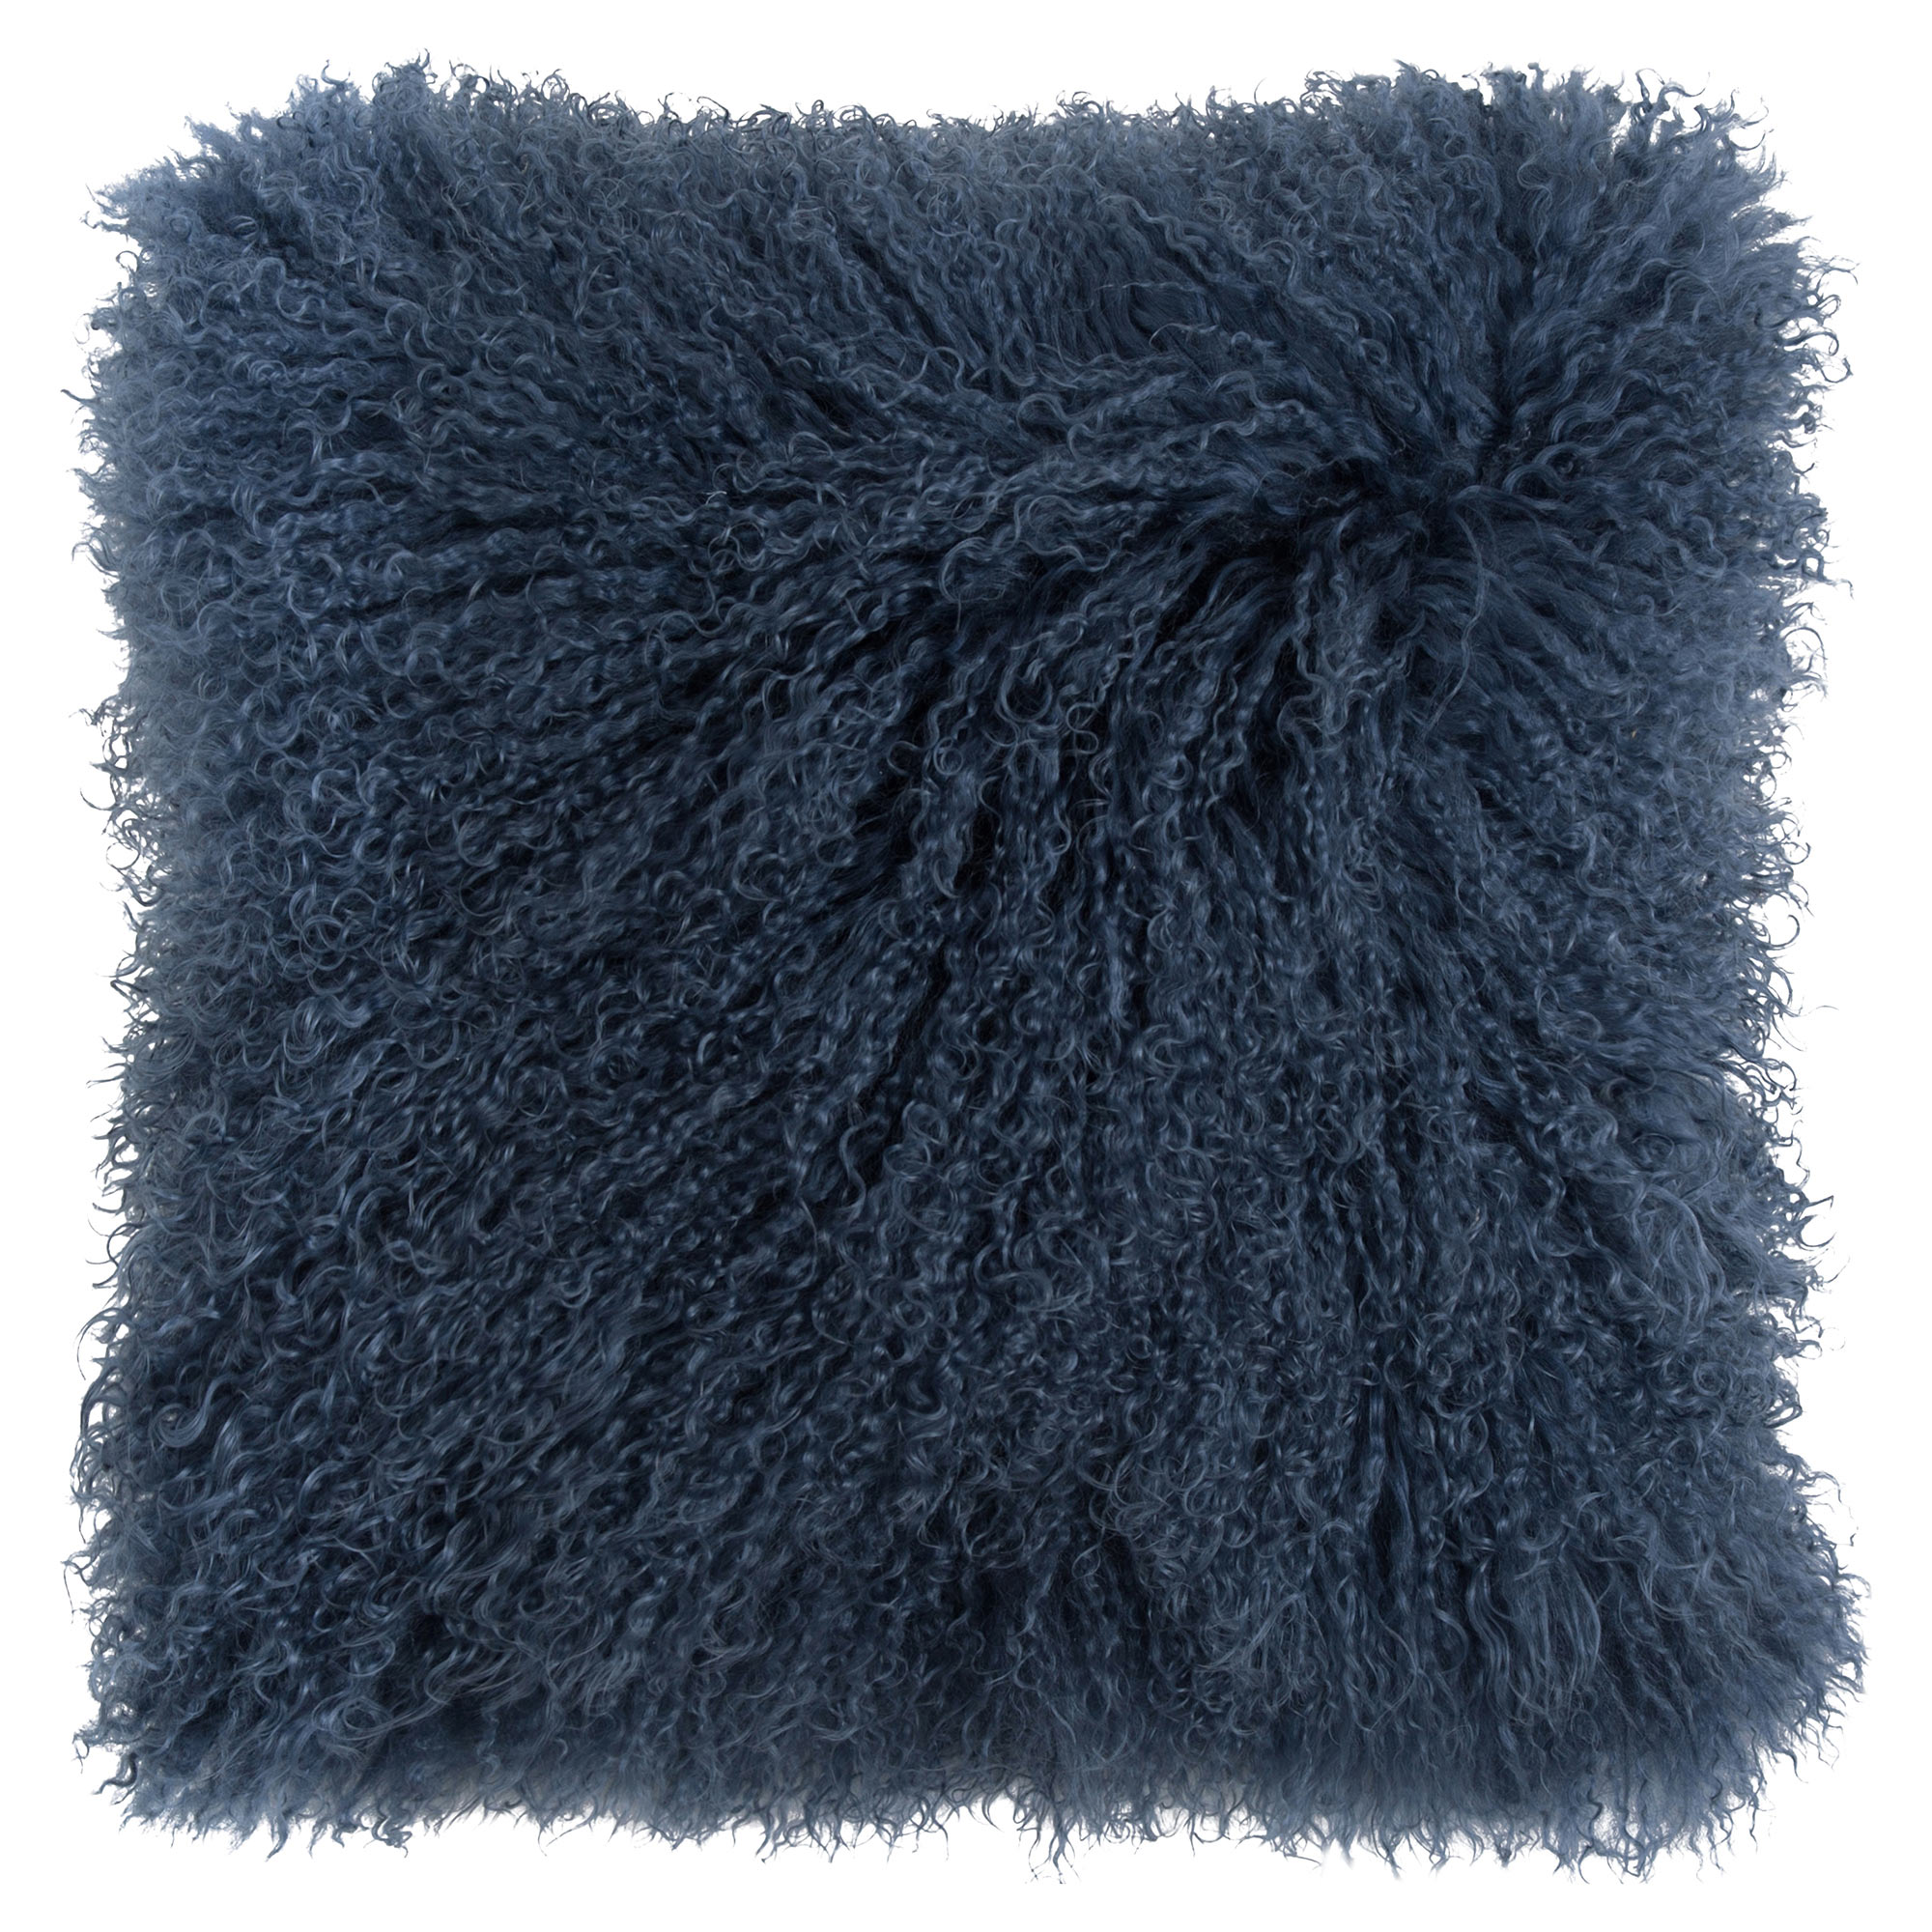 Devi Global Tibetan Textured Wool Navy Blue Pillow - 16x16